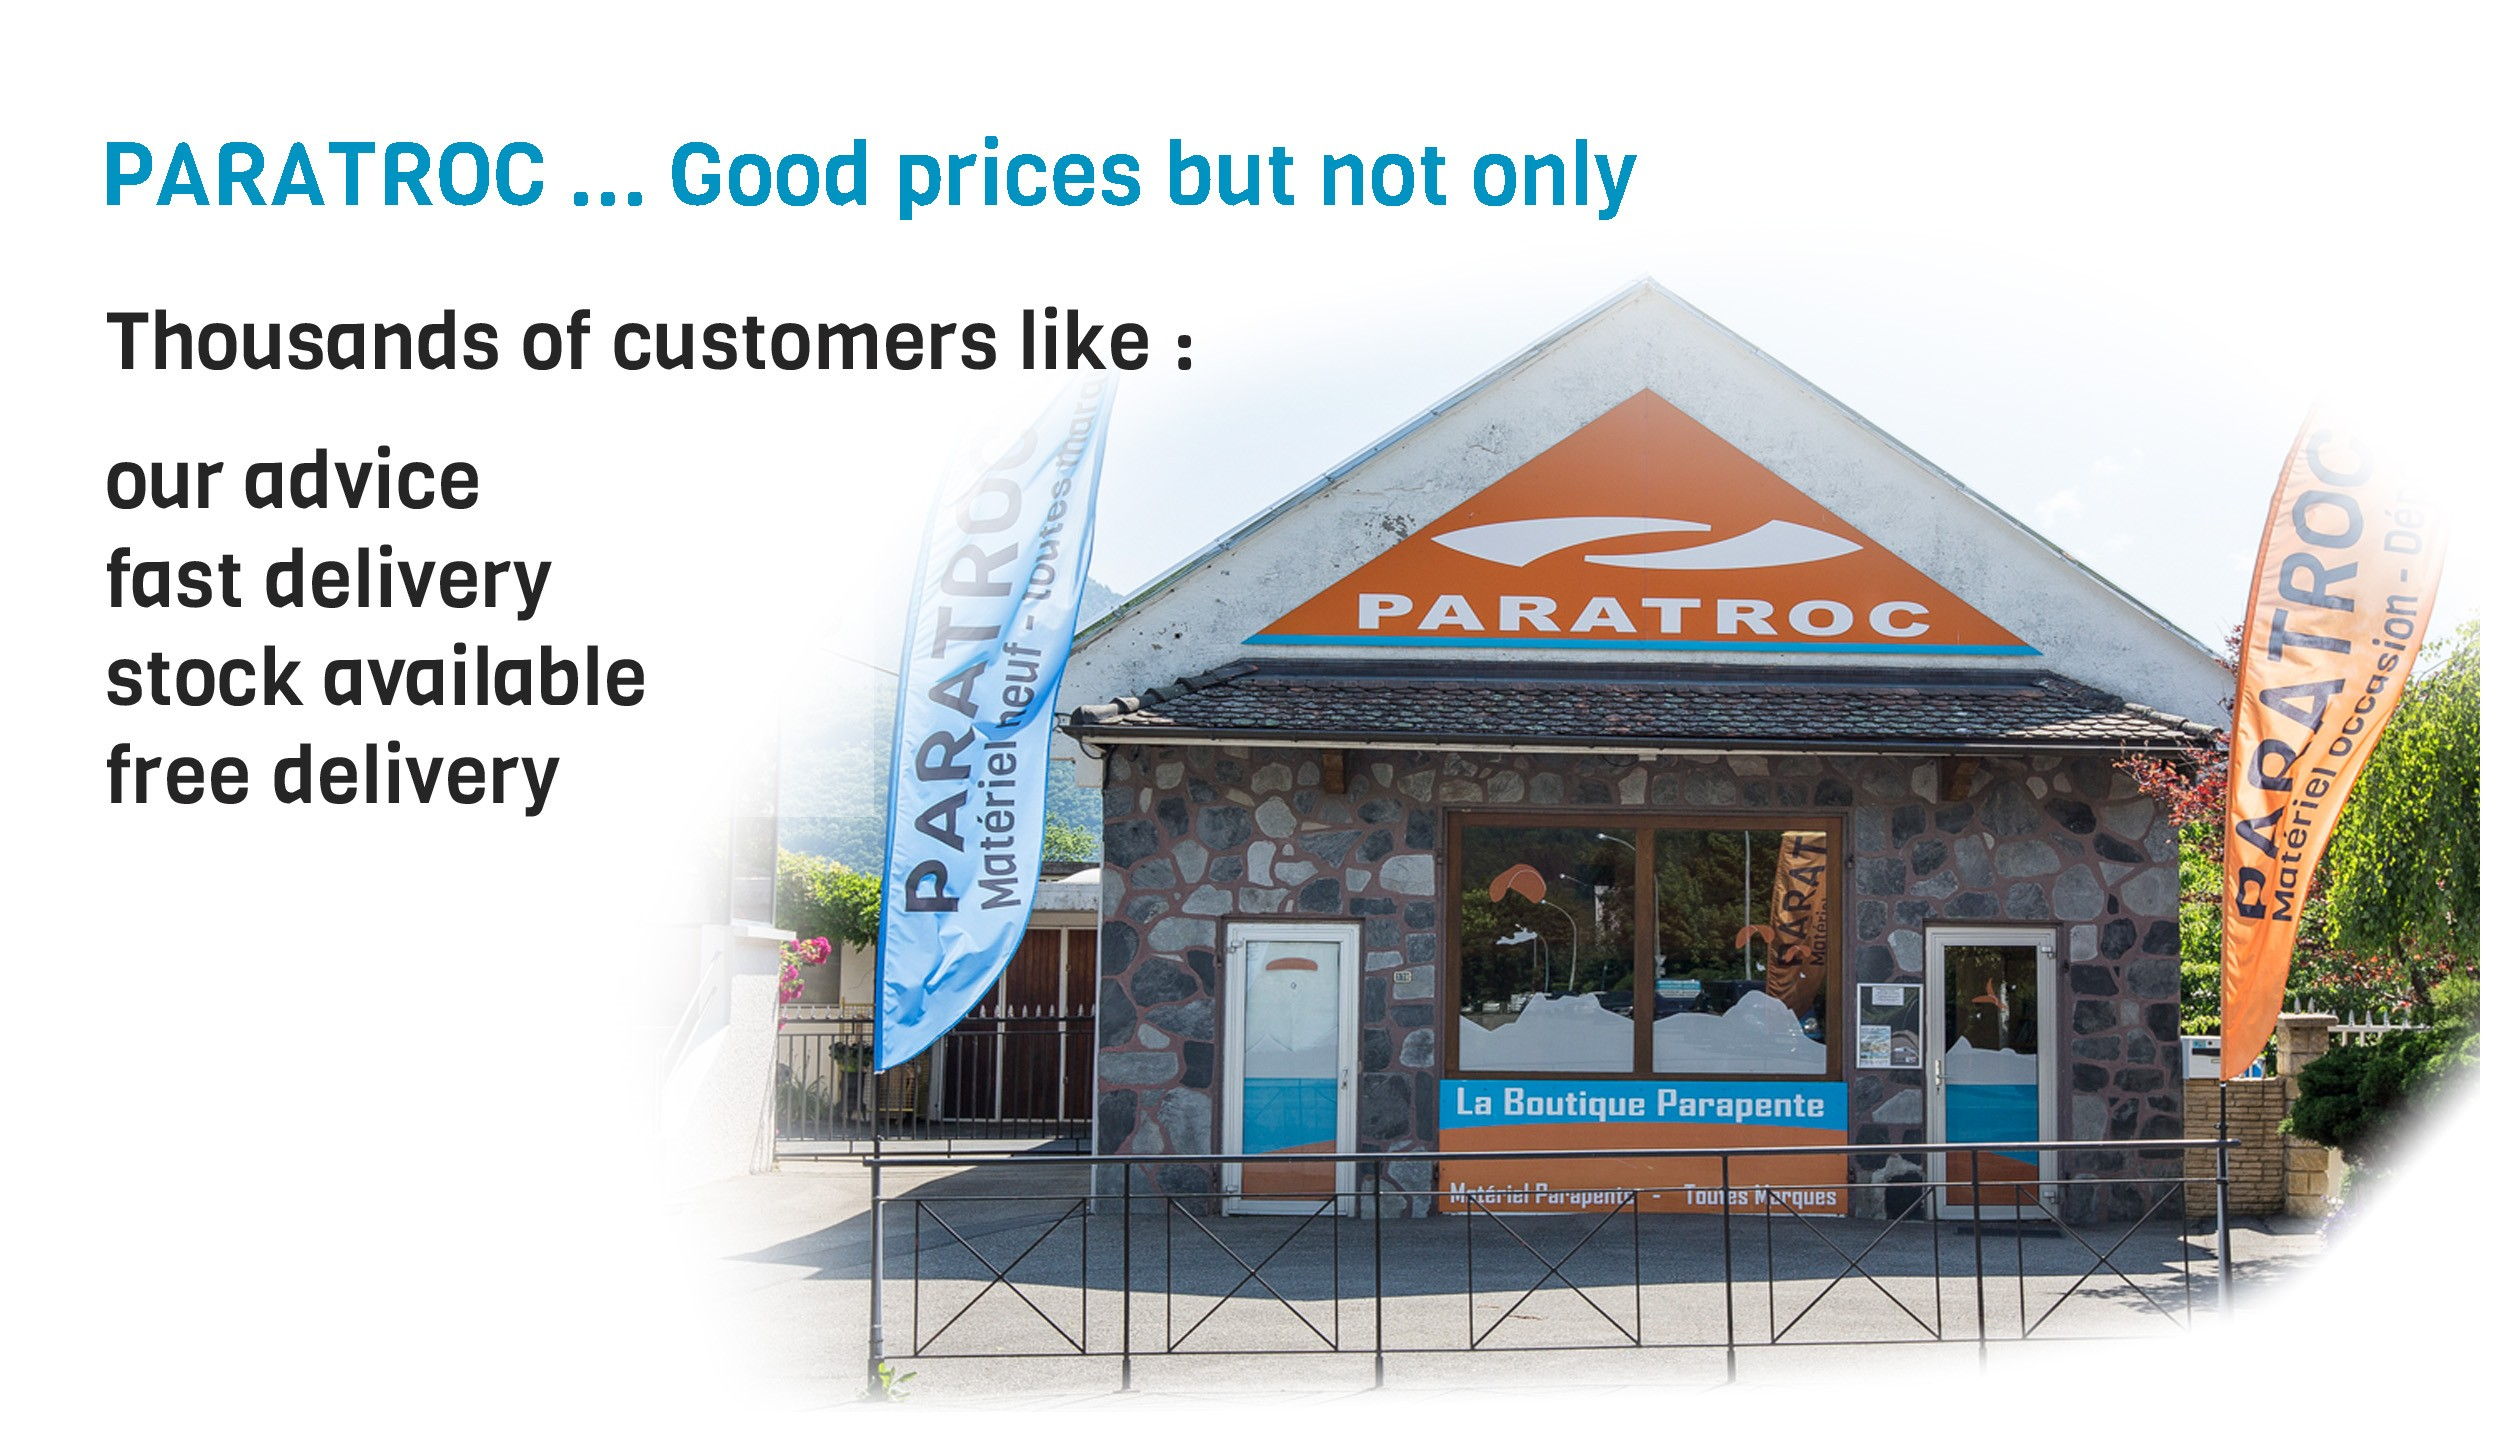 Paratroc - Prices but not only